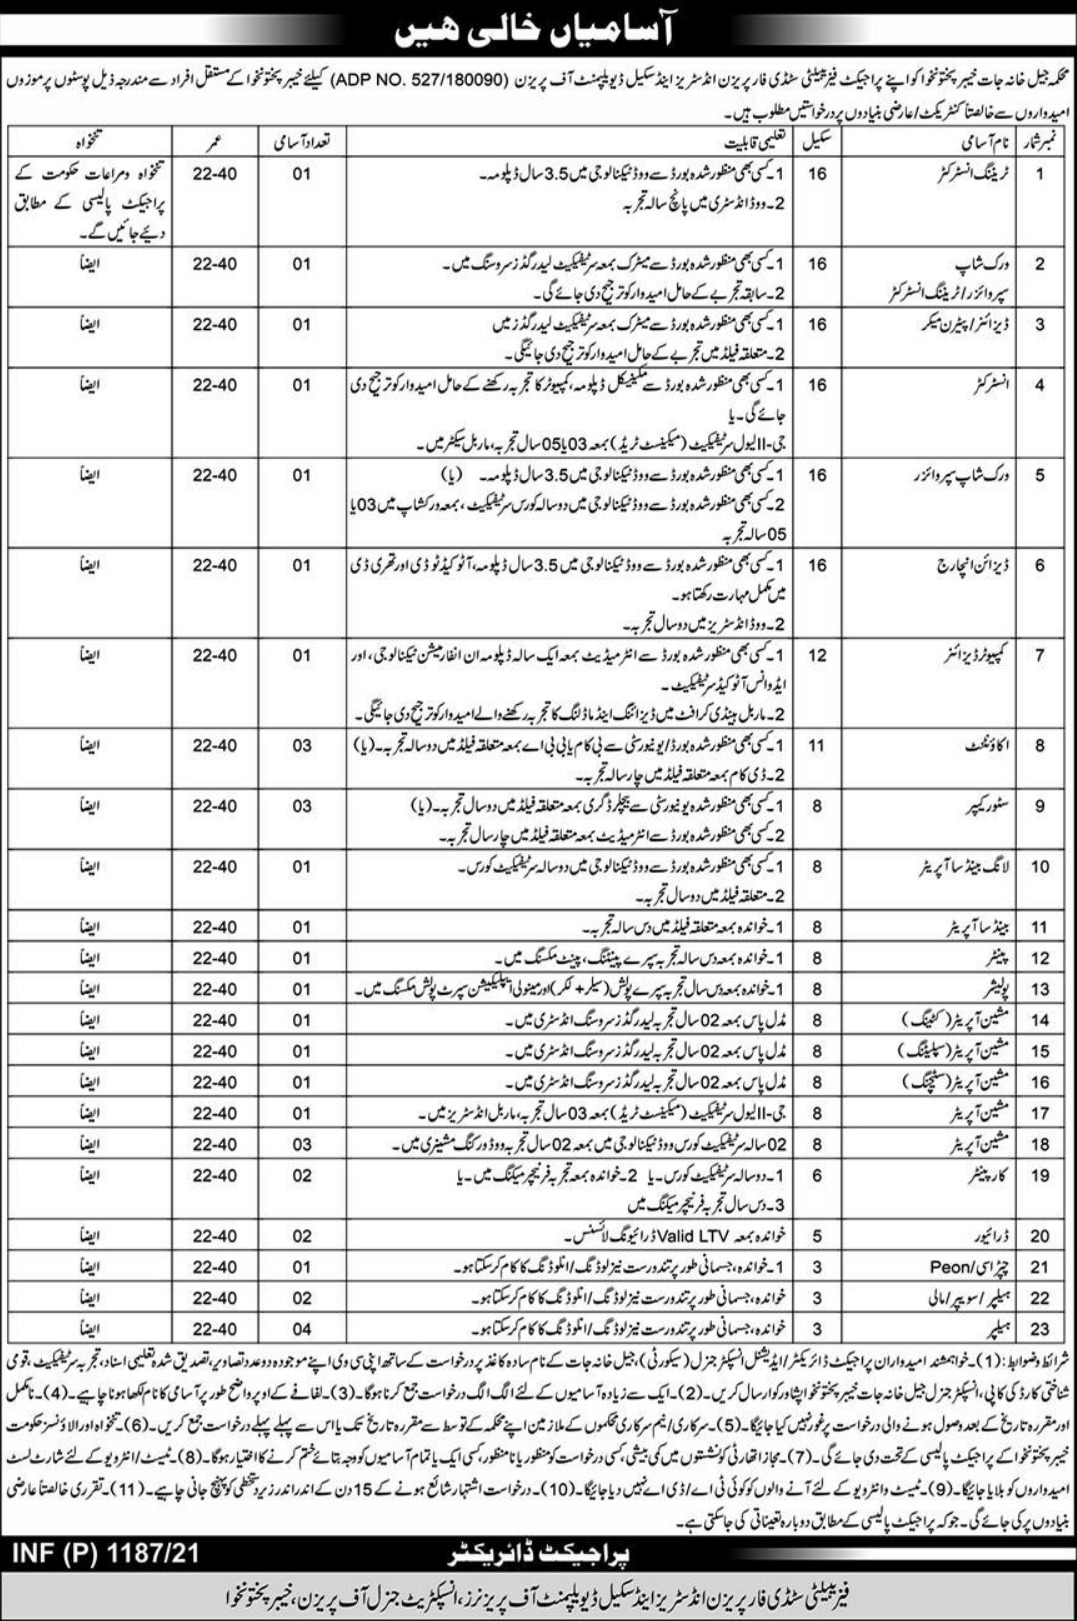 Jail Department KPK Prison Jobs March 2021